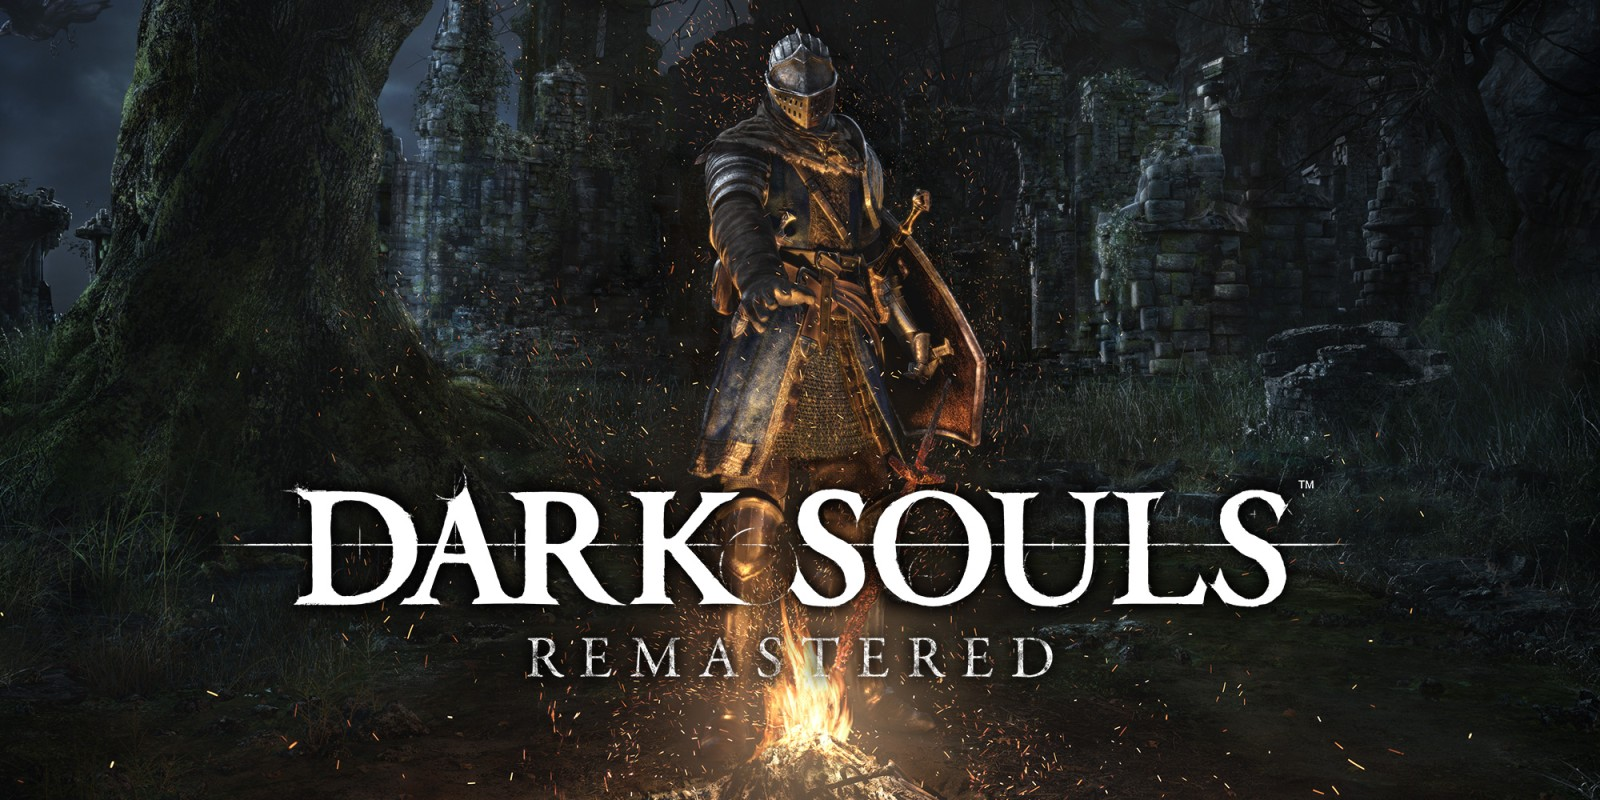 Dark Souls Remastered Switch Delayed to Summer 2018